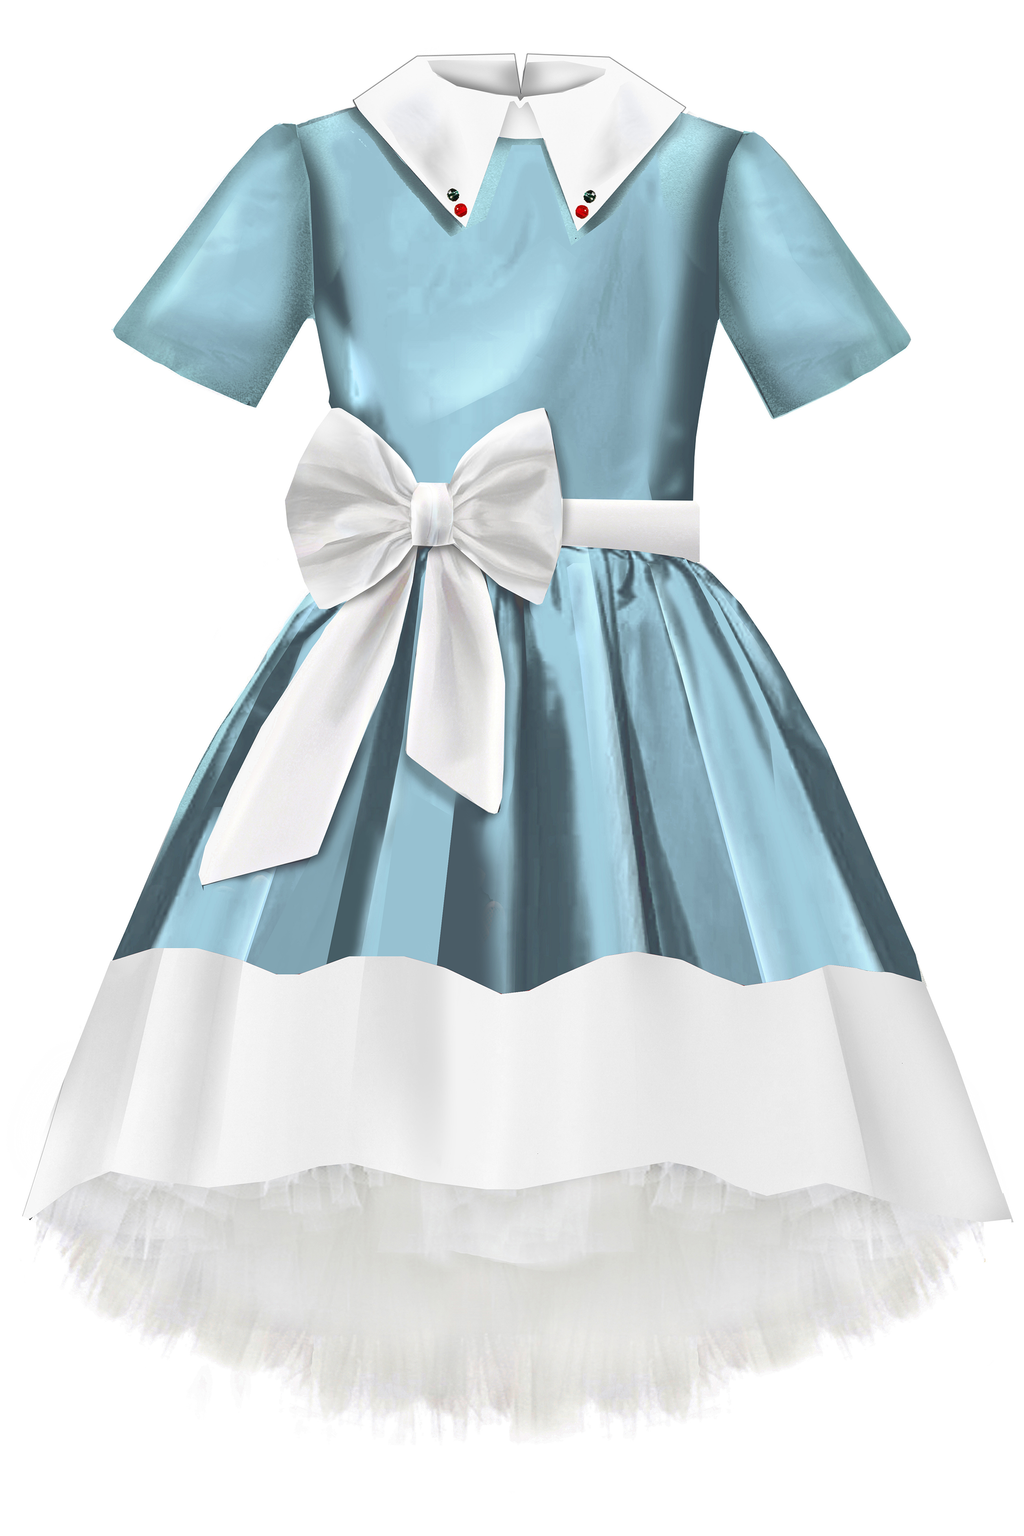 Light Blue Taffeta High-Low Girls Dress with White Collar and Bow - LAZY FRANCIS - Shop in store at 406 Kings Road, Chelsea, London or shop online at www.lazyfrancis.com